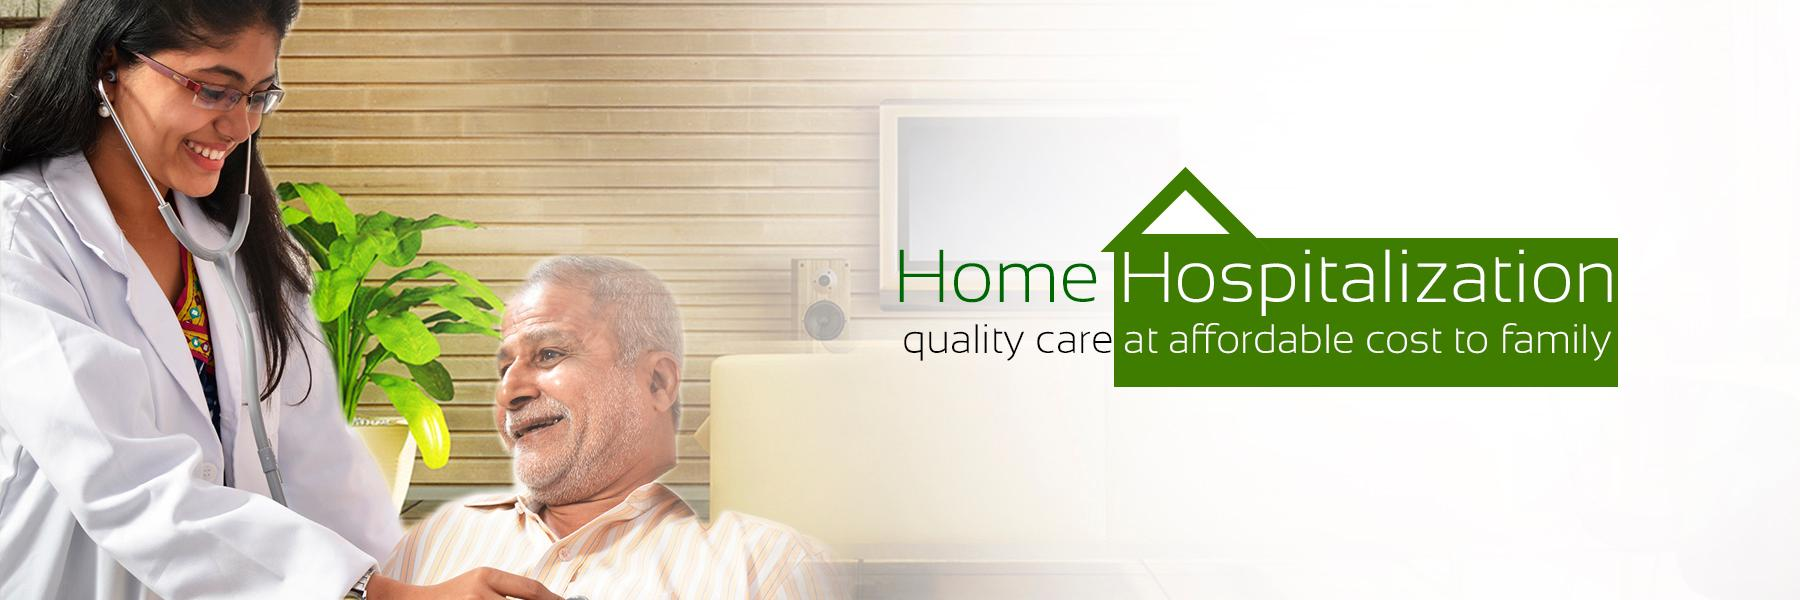 Home Patient Care Services Near Me, Home Hospital Equipments